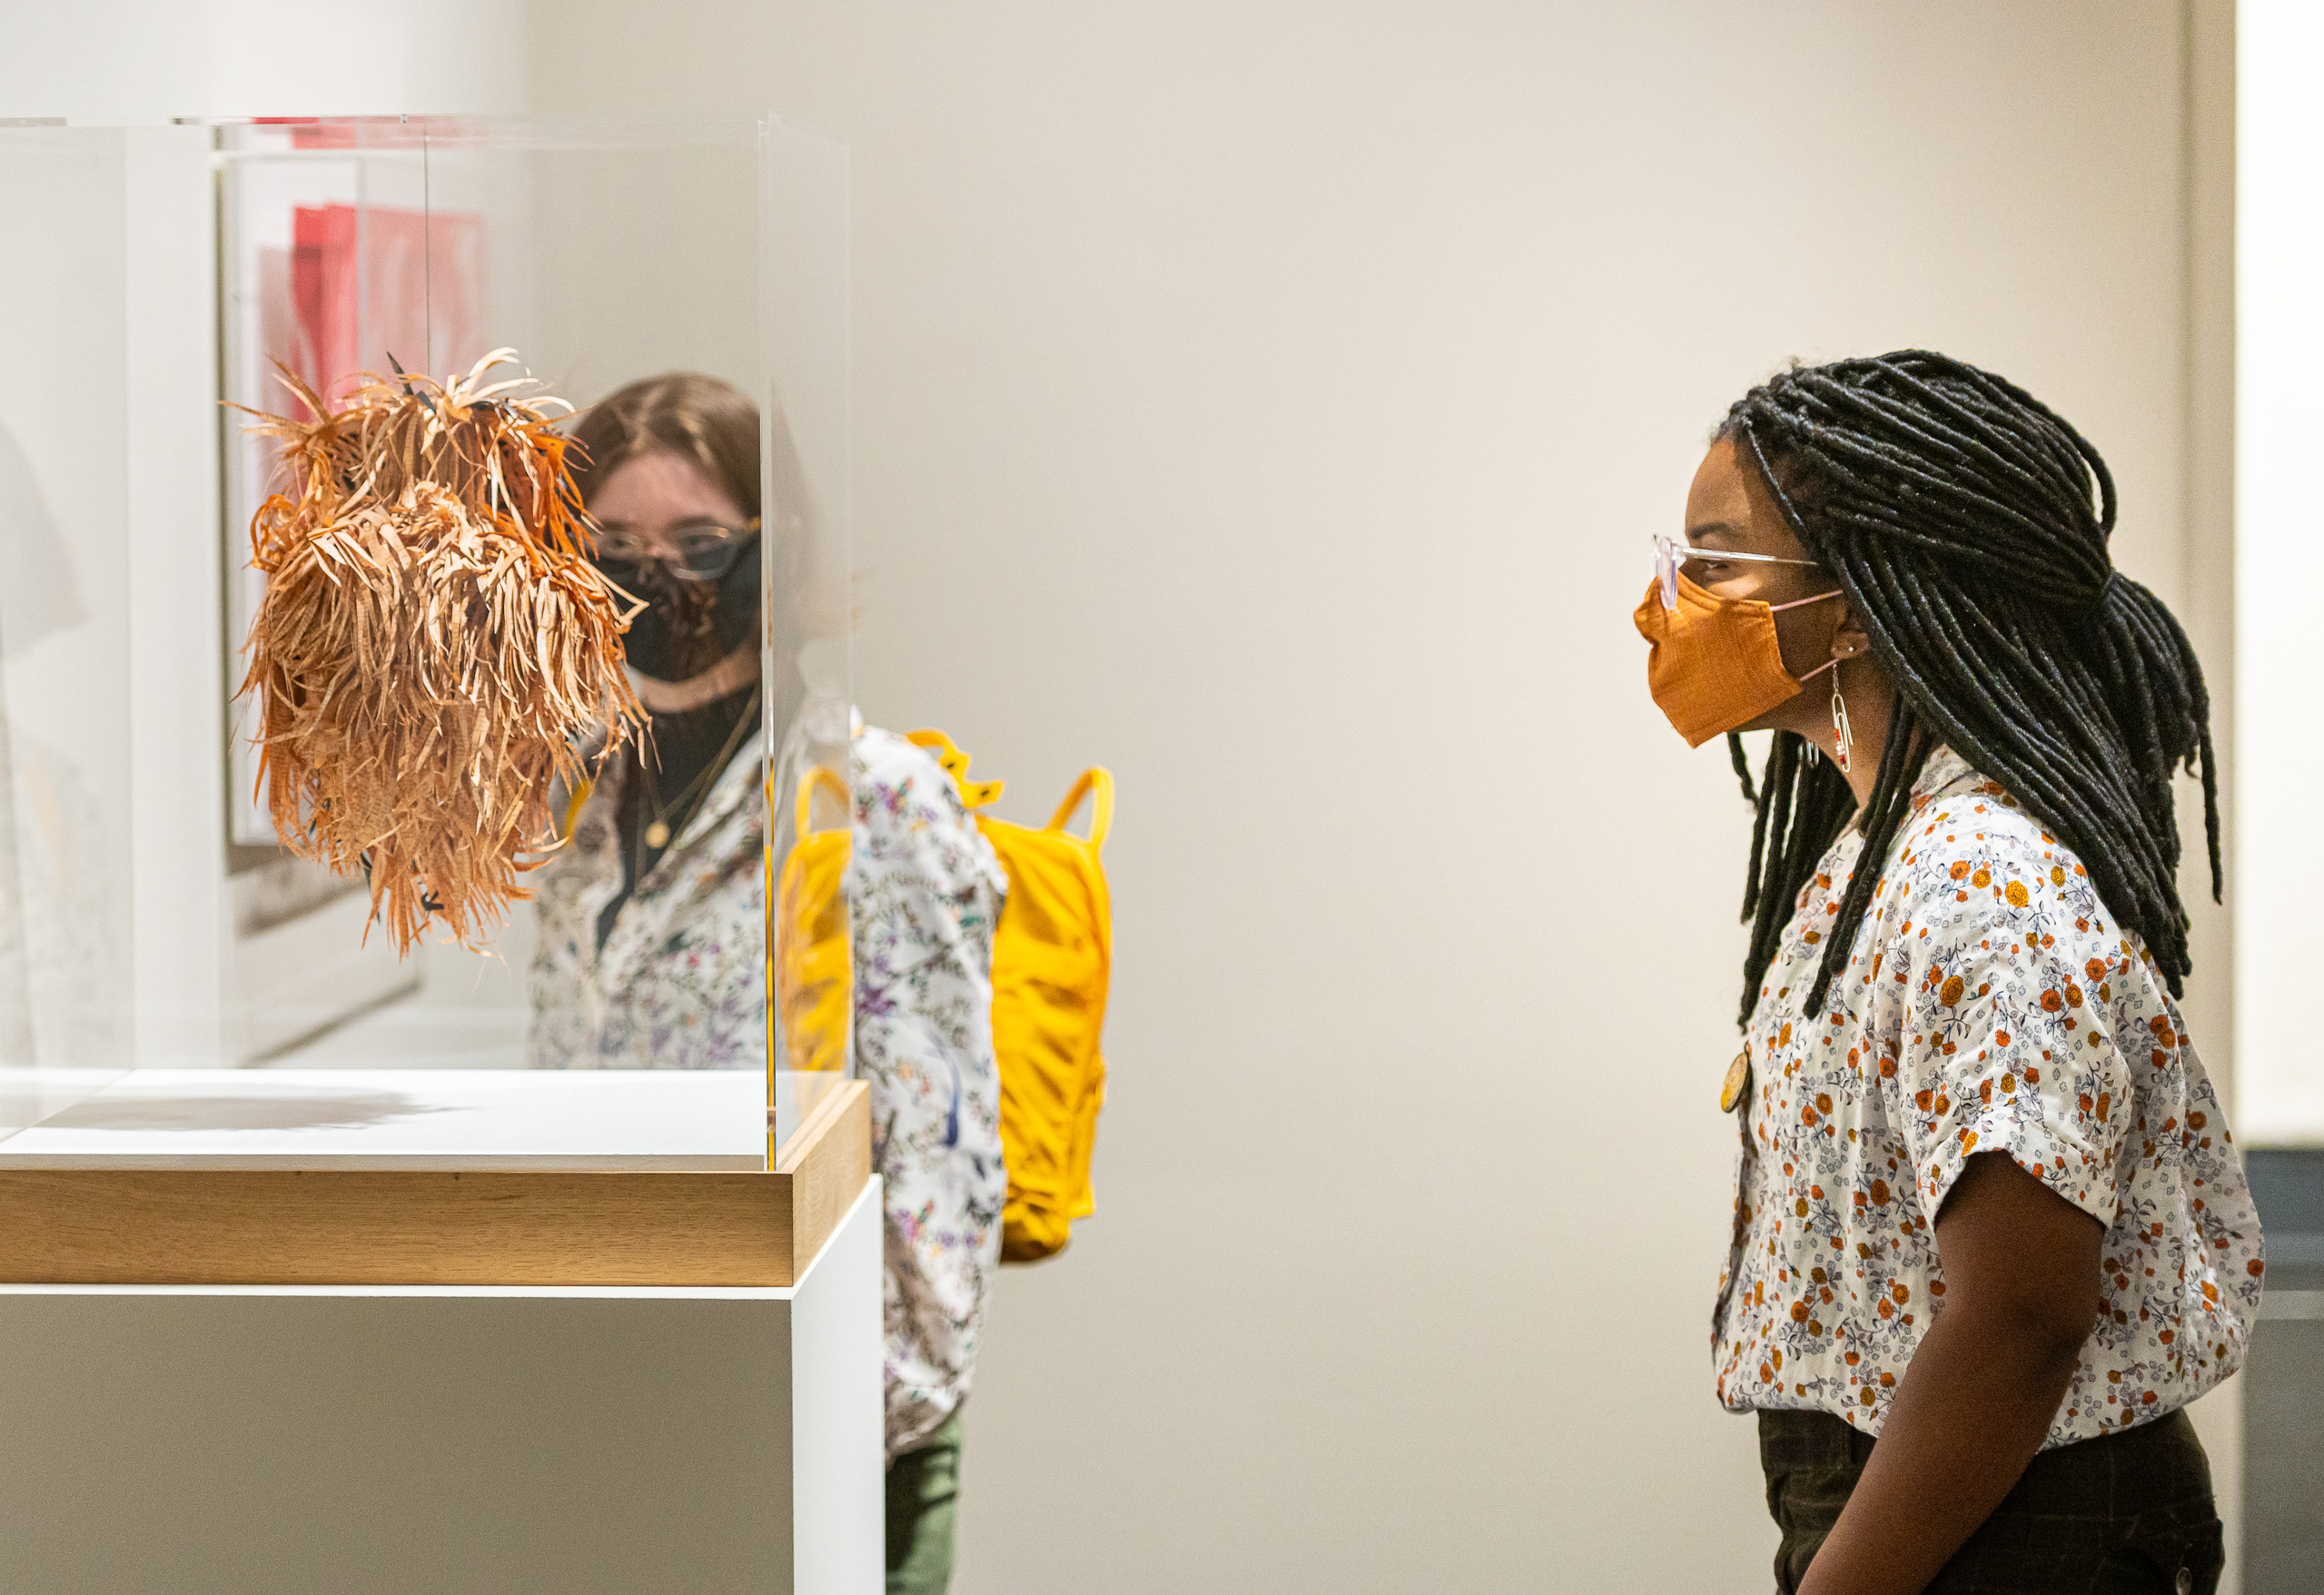 Young woman with long, thin braids, wearing glasses and an orange face mask, looks at a small hanging sculpture made of thinly cut strips of pale orange paper.